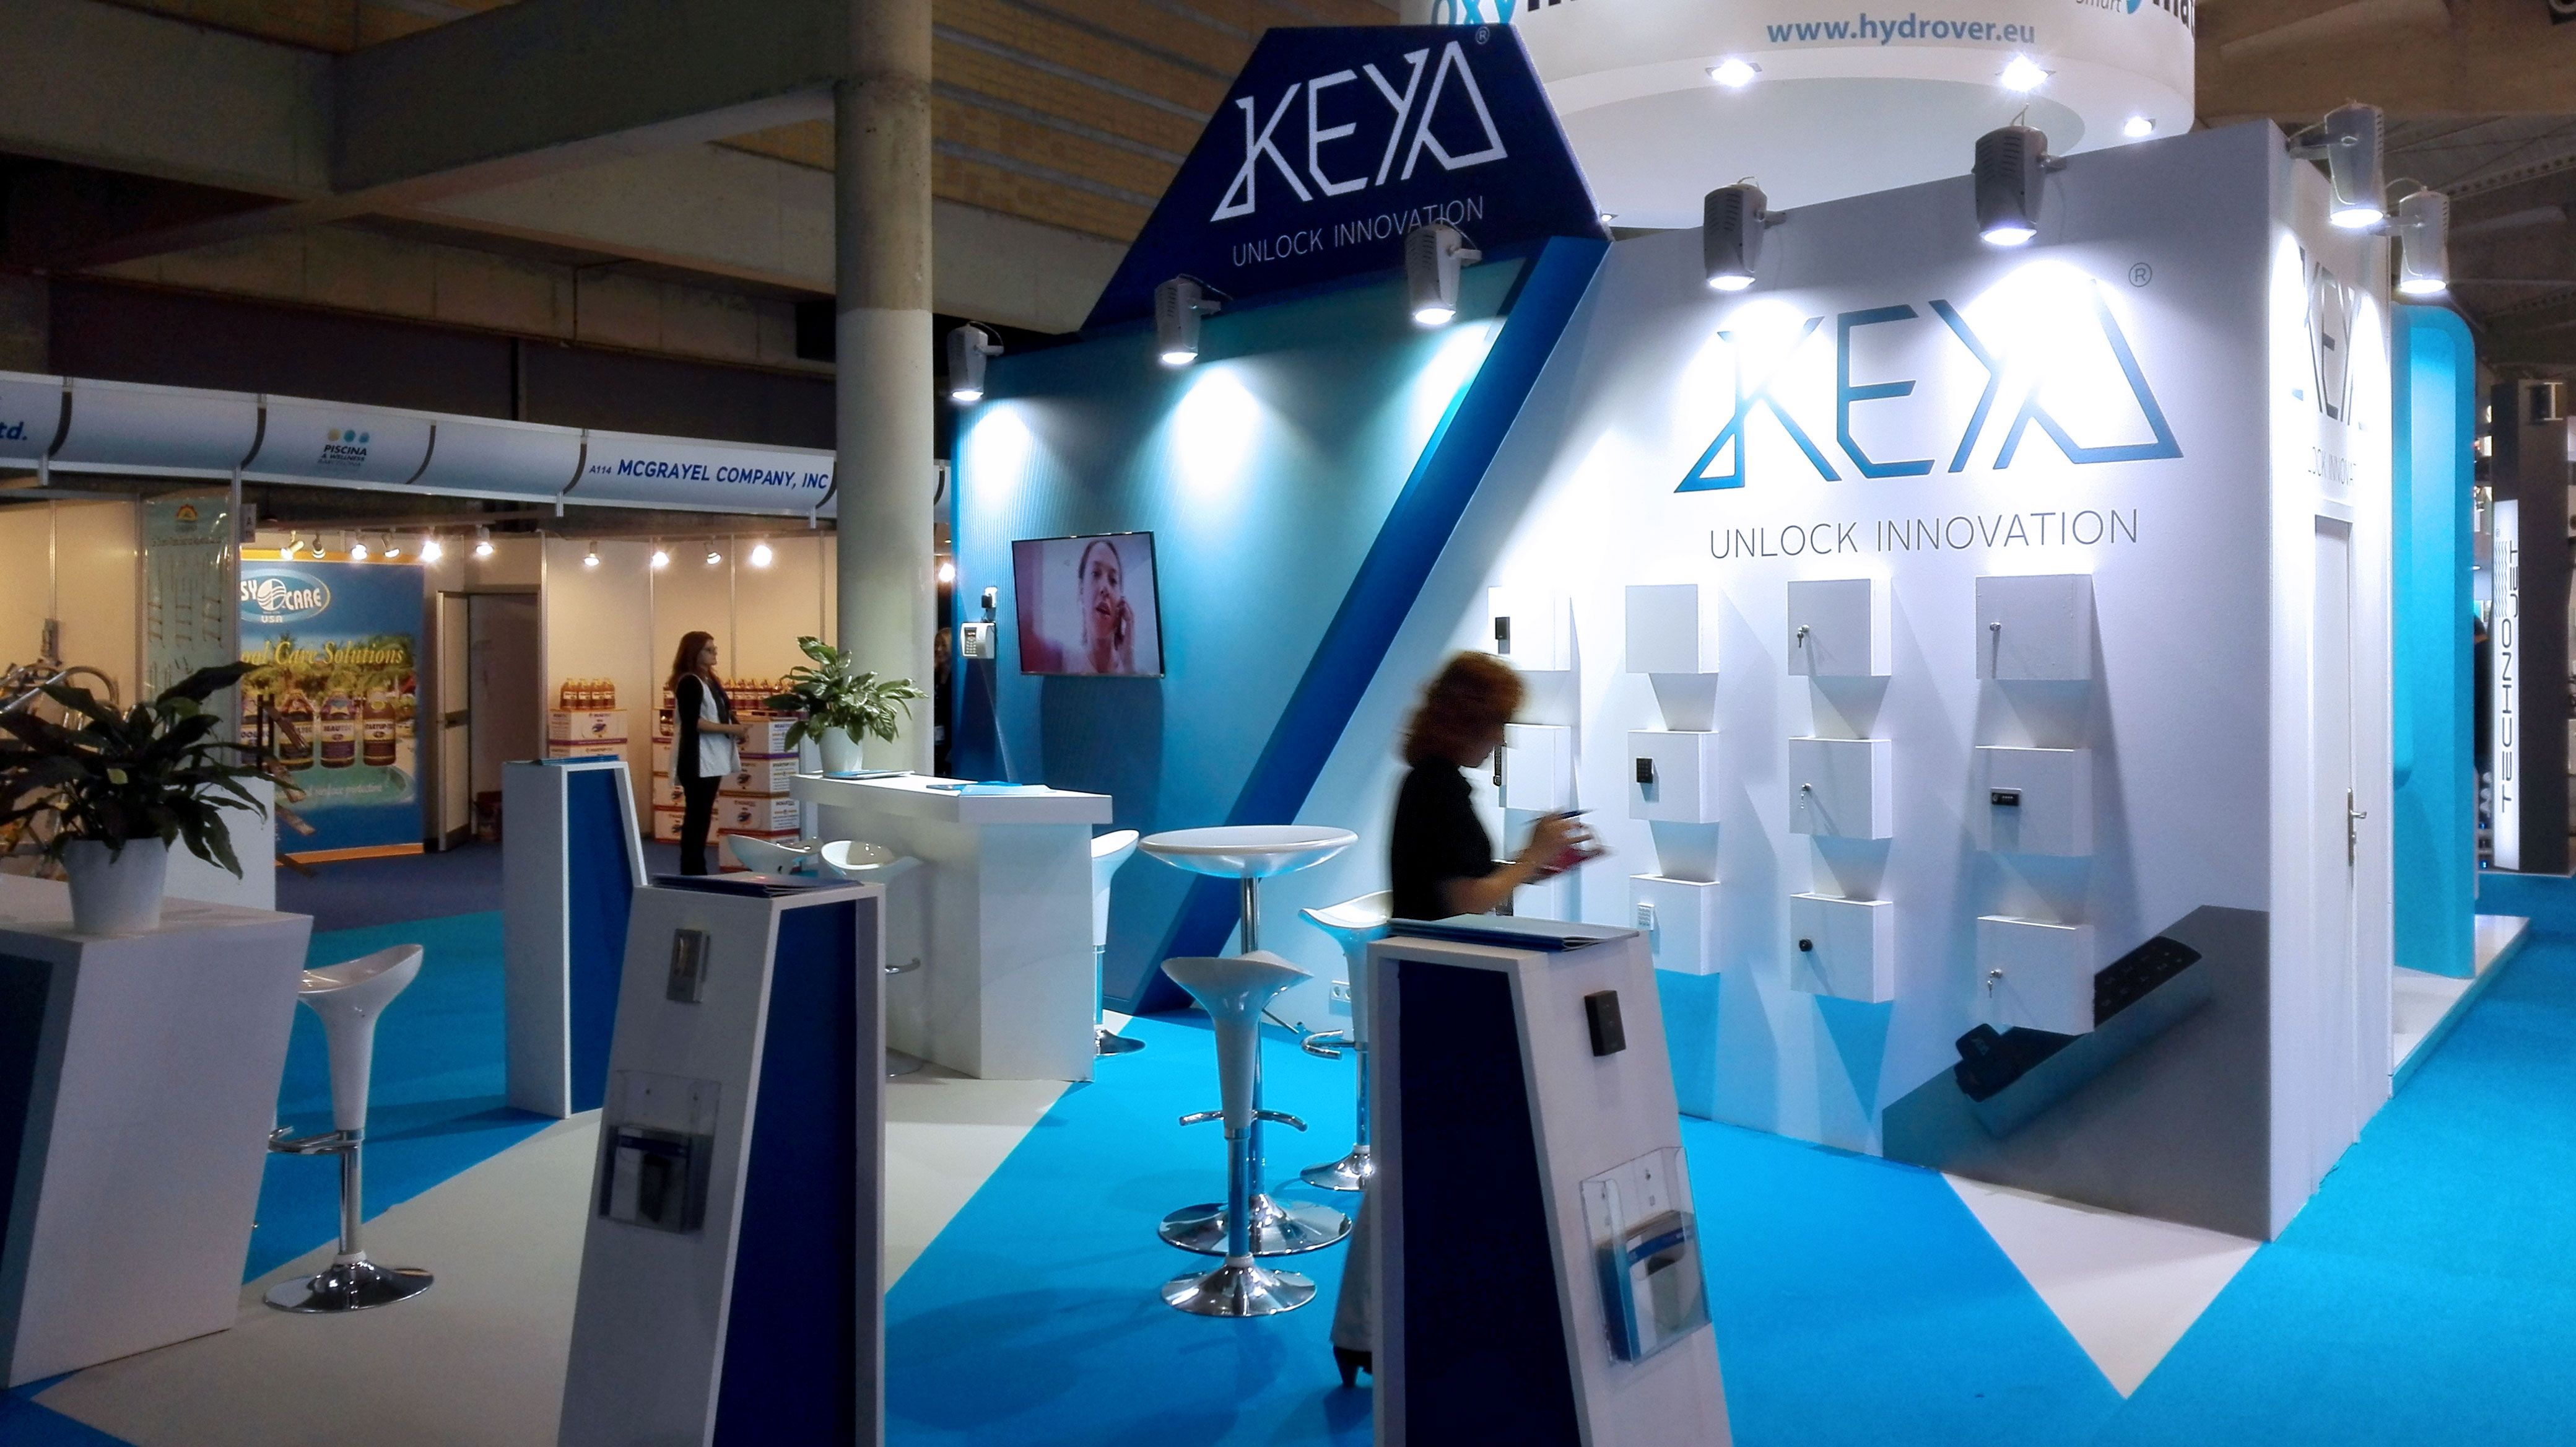 Grupo alc developed the stand project of the exhibitor for Piscina barcelona